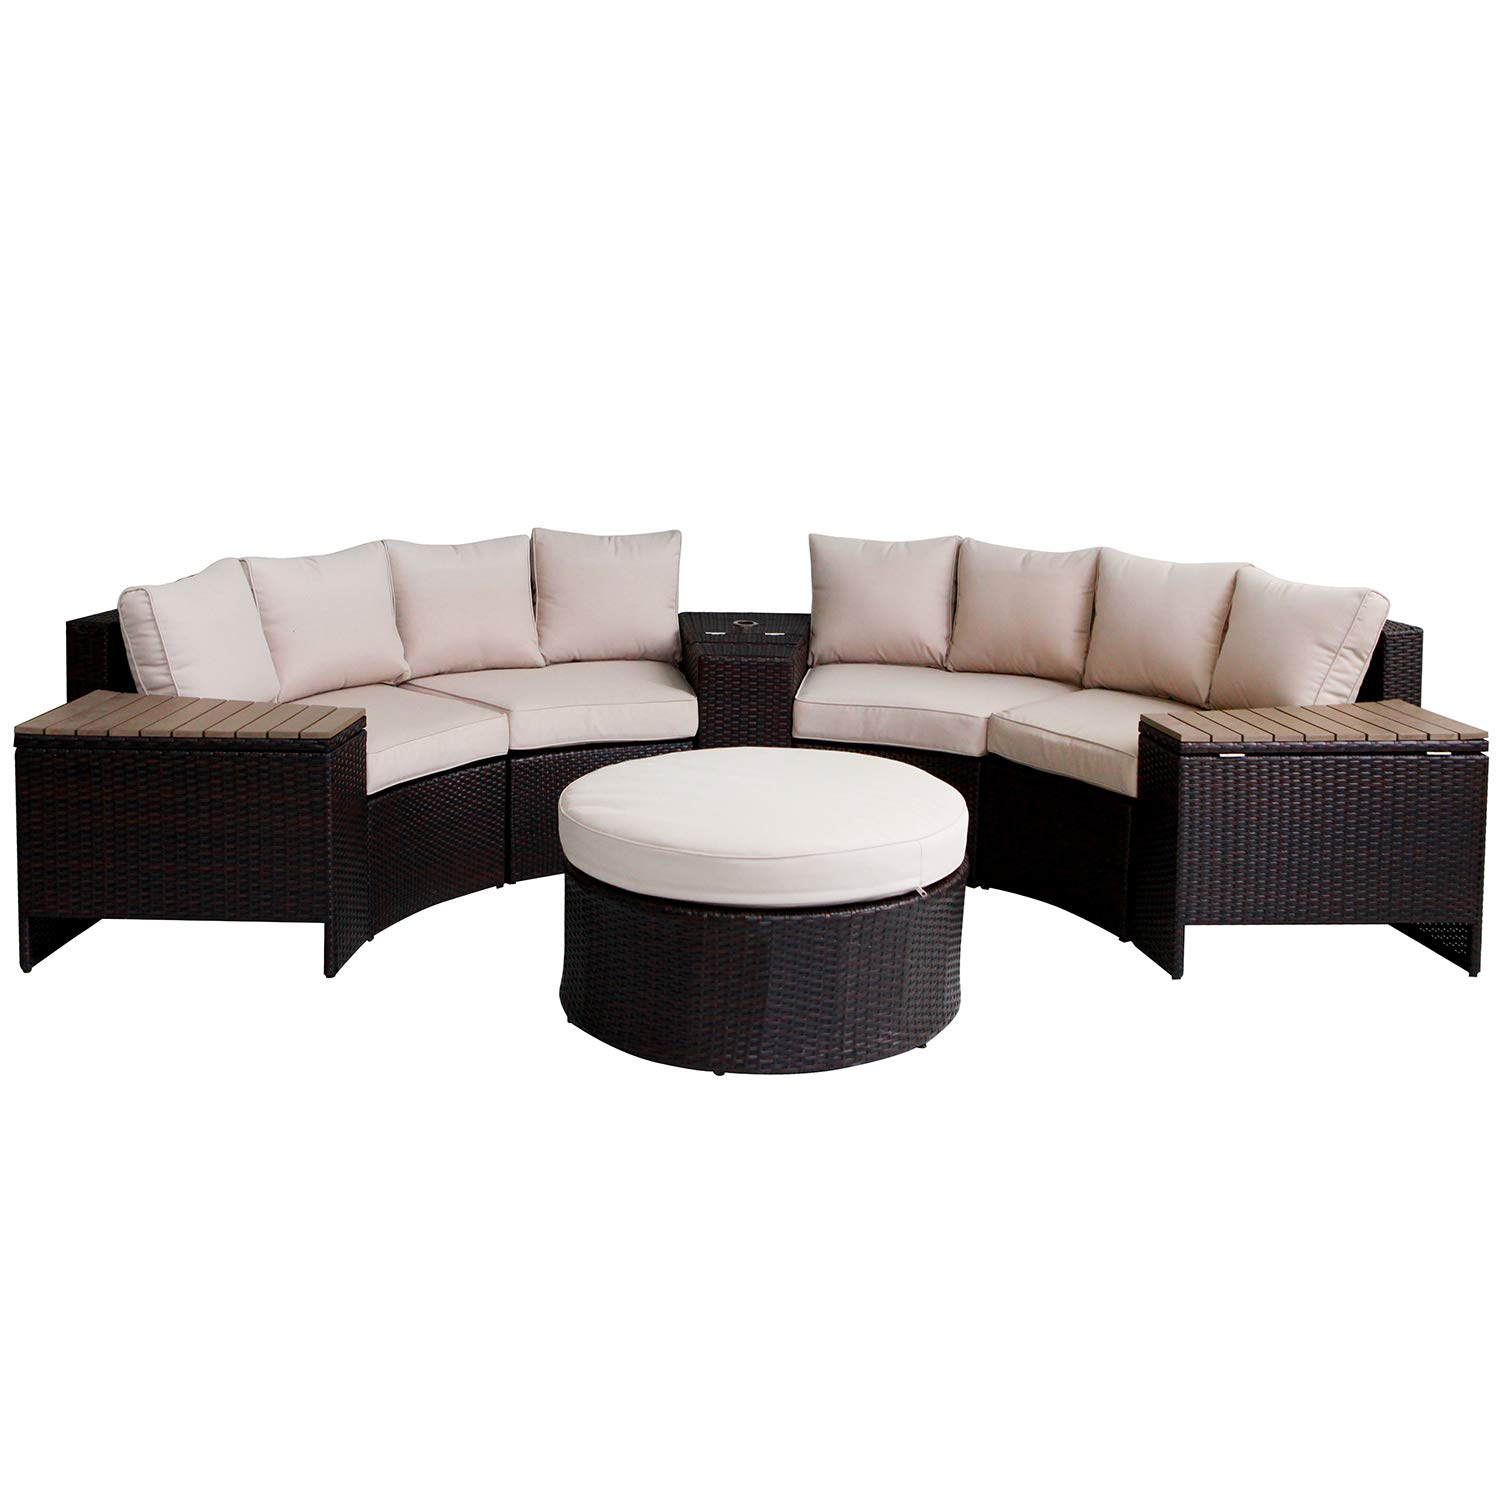 Outdoor Sectional Sofa 8-Piece Half-Moon Patio Furniture Set w Round Coffee Table,Patio Curved Rattan Sofa Set w Beige Fabric Cushions